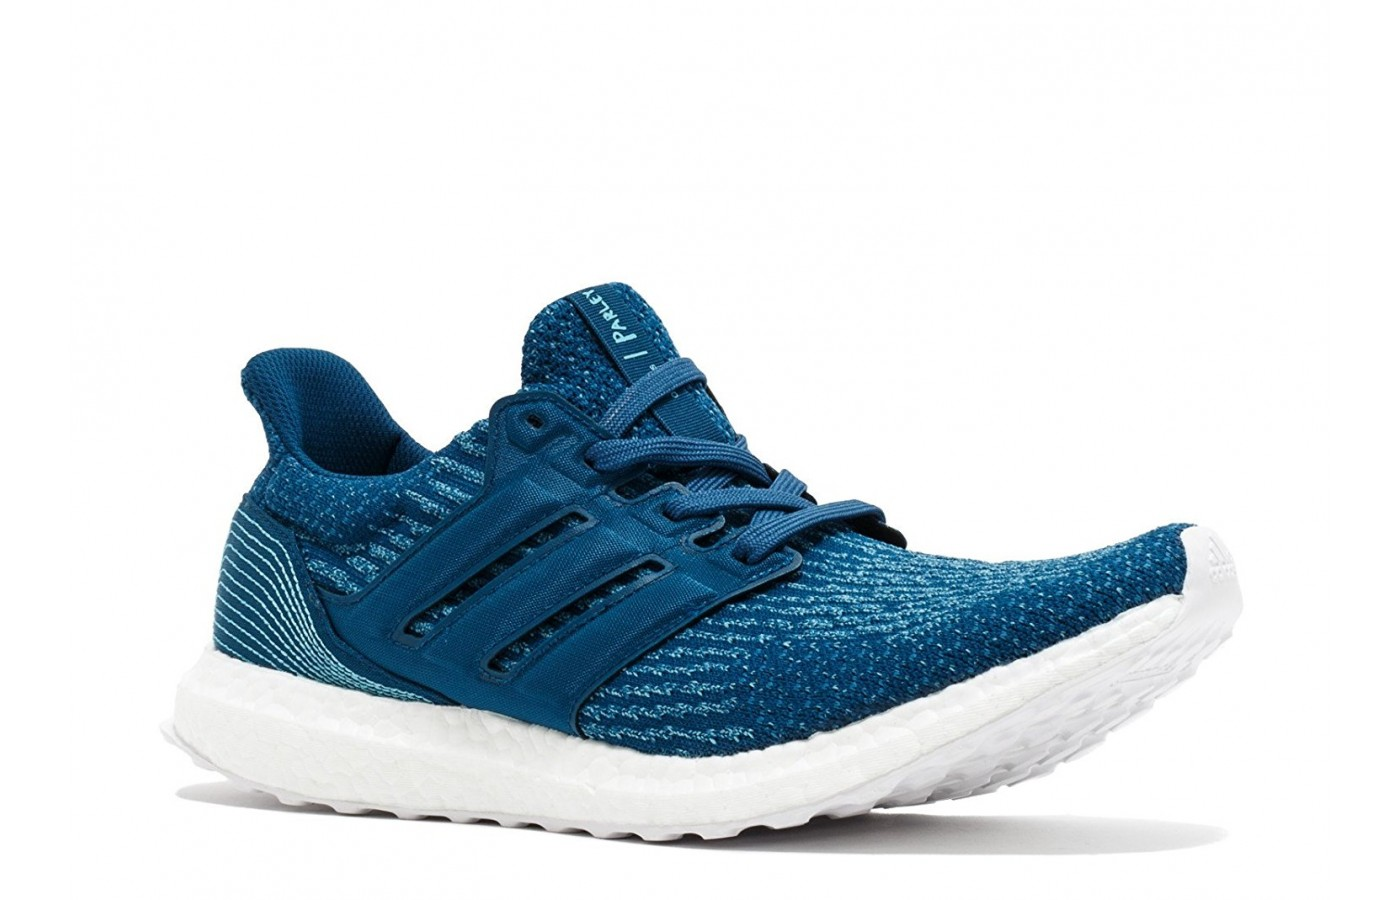 49037bf58 Adidas Ultraboost X Parley Tested for Performance - WalkJogRun